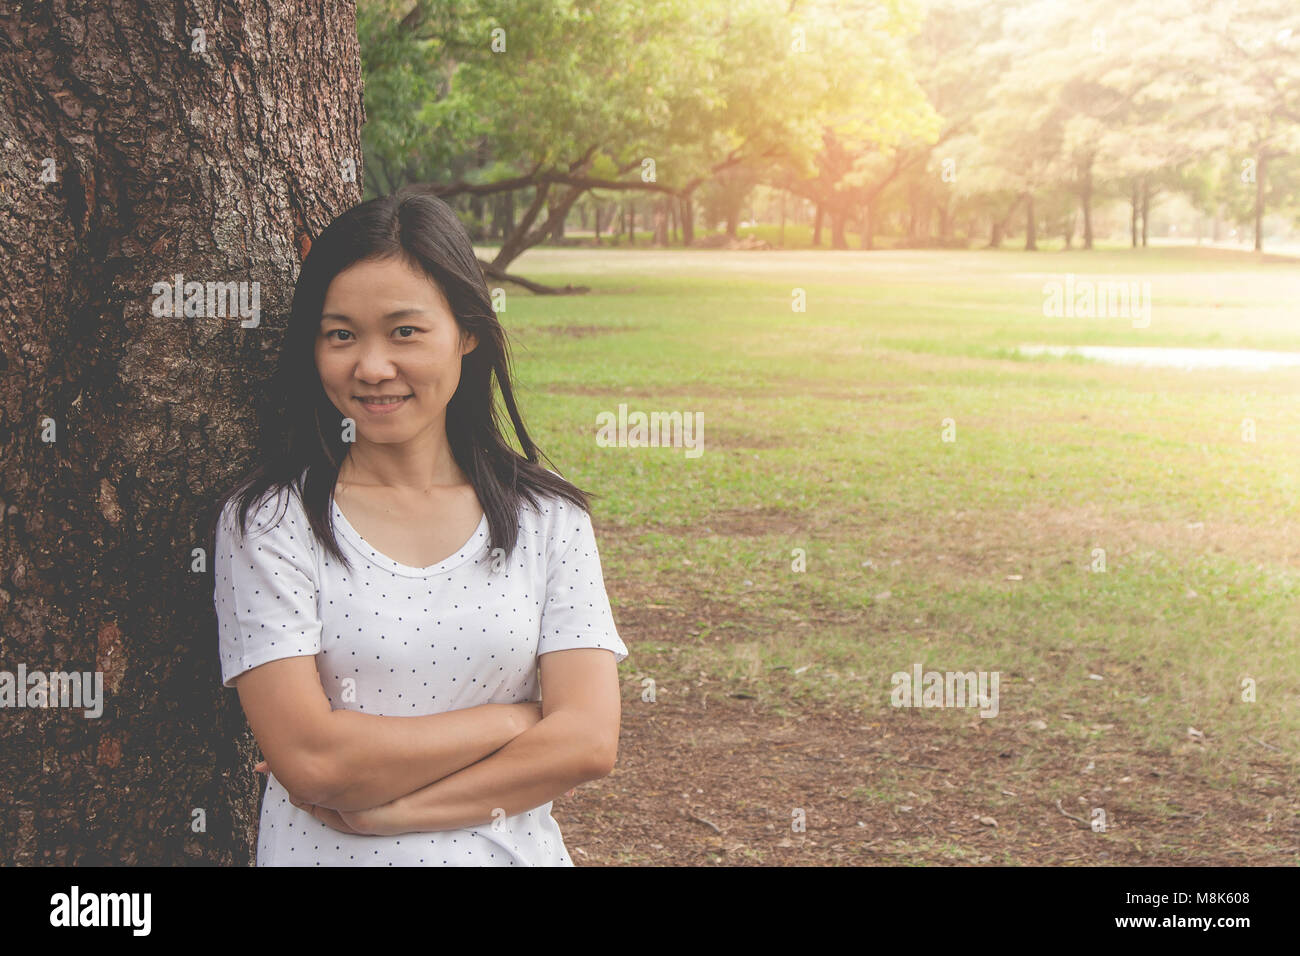 Maison de vacances et de Concept : Woman wearing white t-shirt. Elle debout sur l'herbe verte et le sentiment Photo Stock